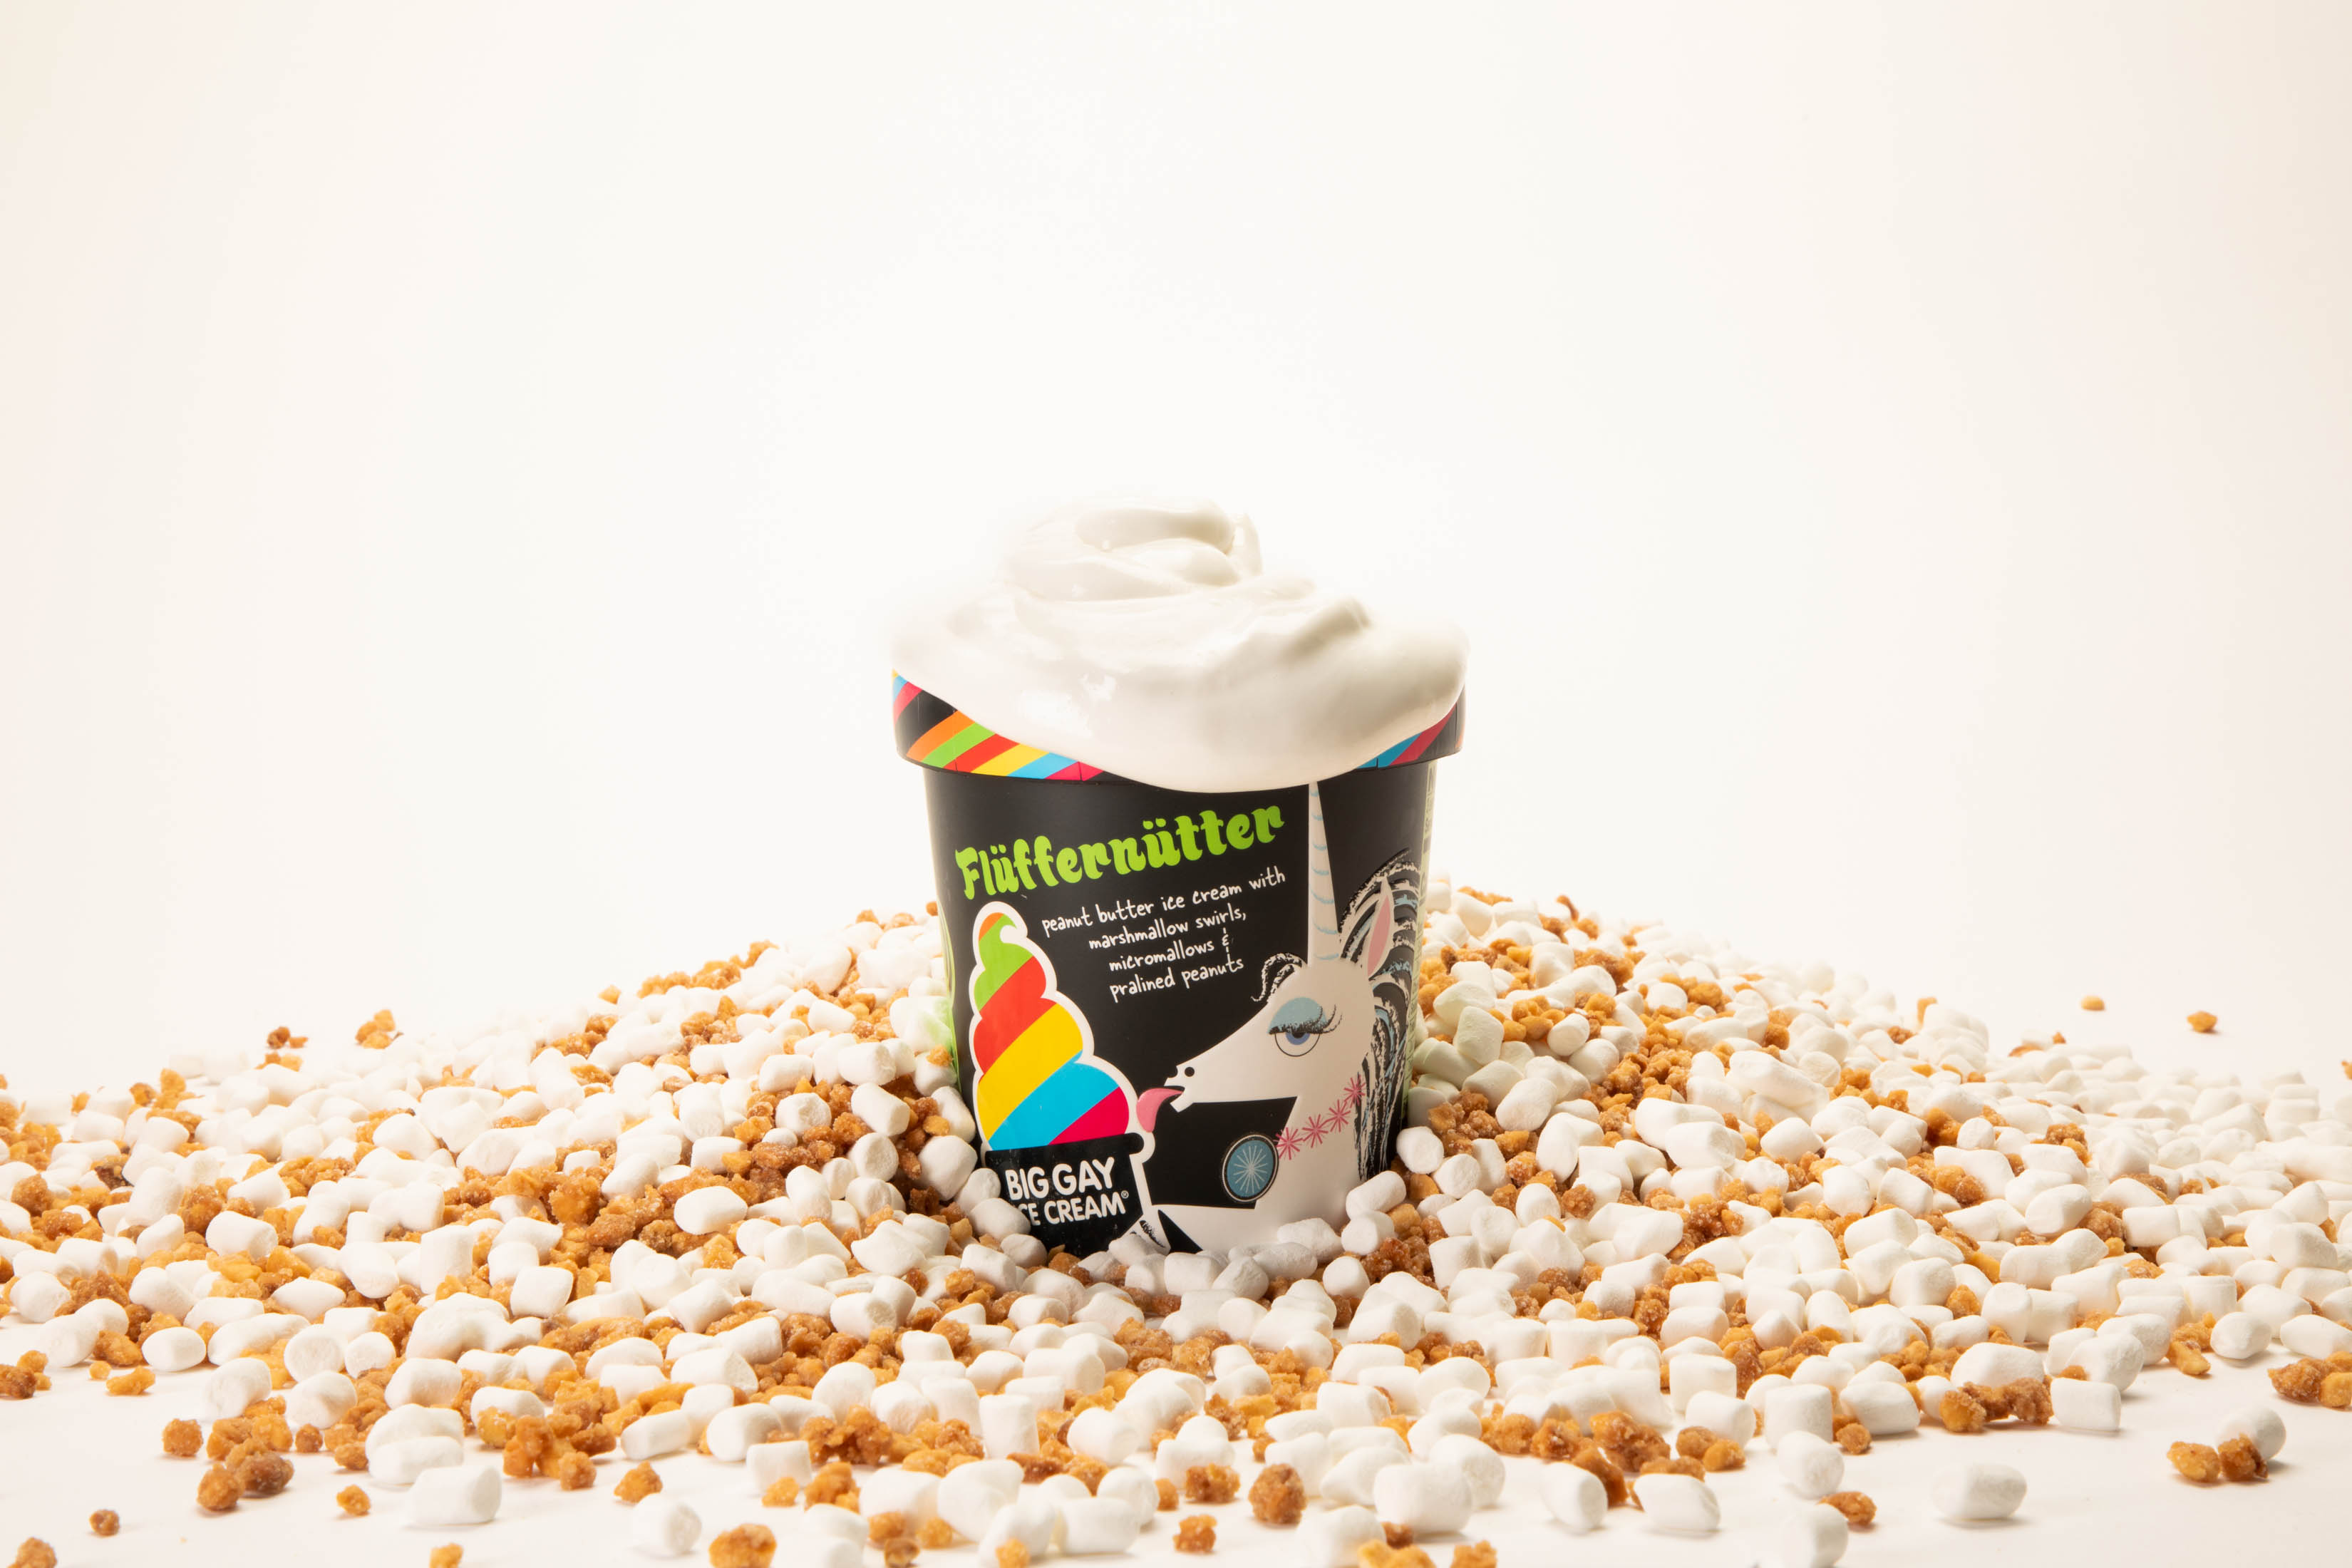 Fluffernutter, a new flavor from New York wunderkind Big Gay Ice Cream.